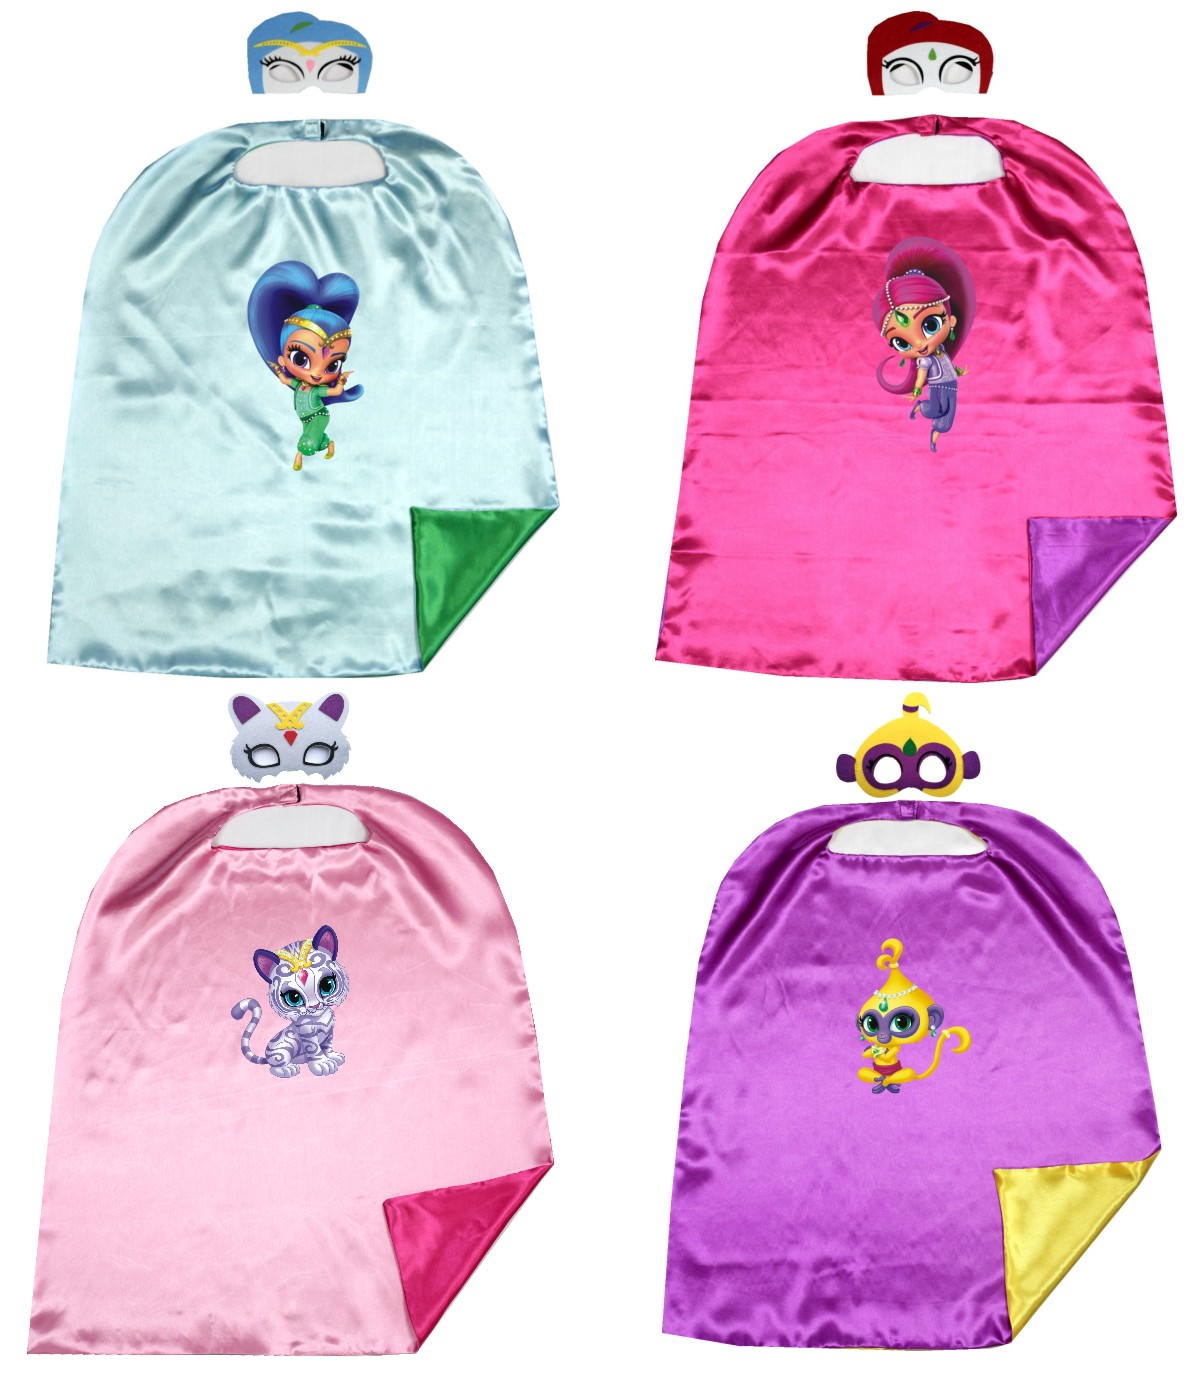 70 * 80см 2айзер жылтыратқышы мен жылтырлығы Caps matching masks BirthdayParty Favourite Inspired Dress Up Capes + Masks